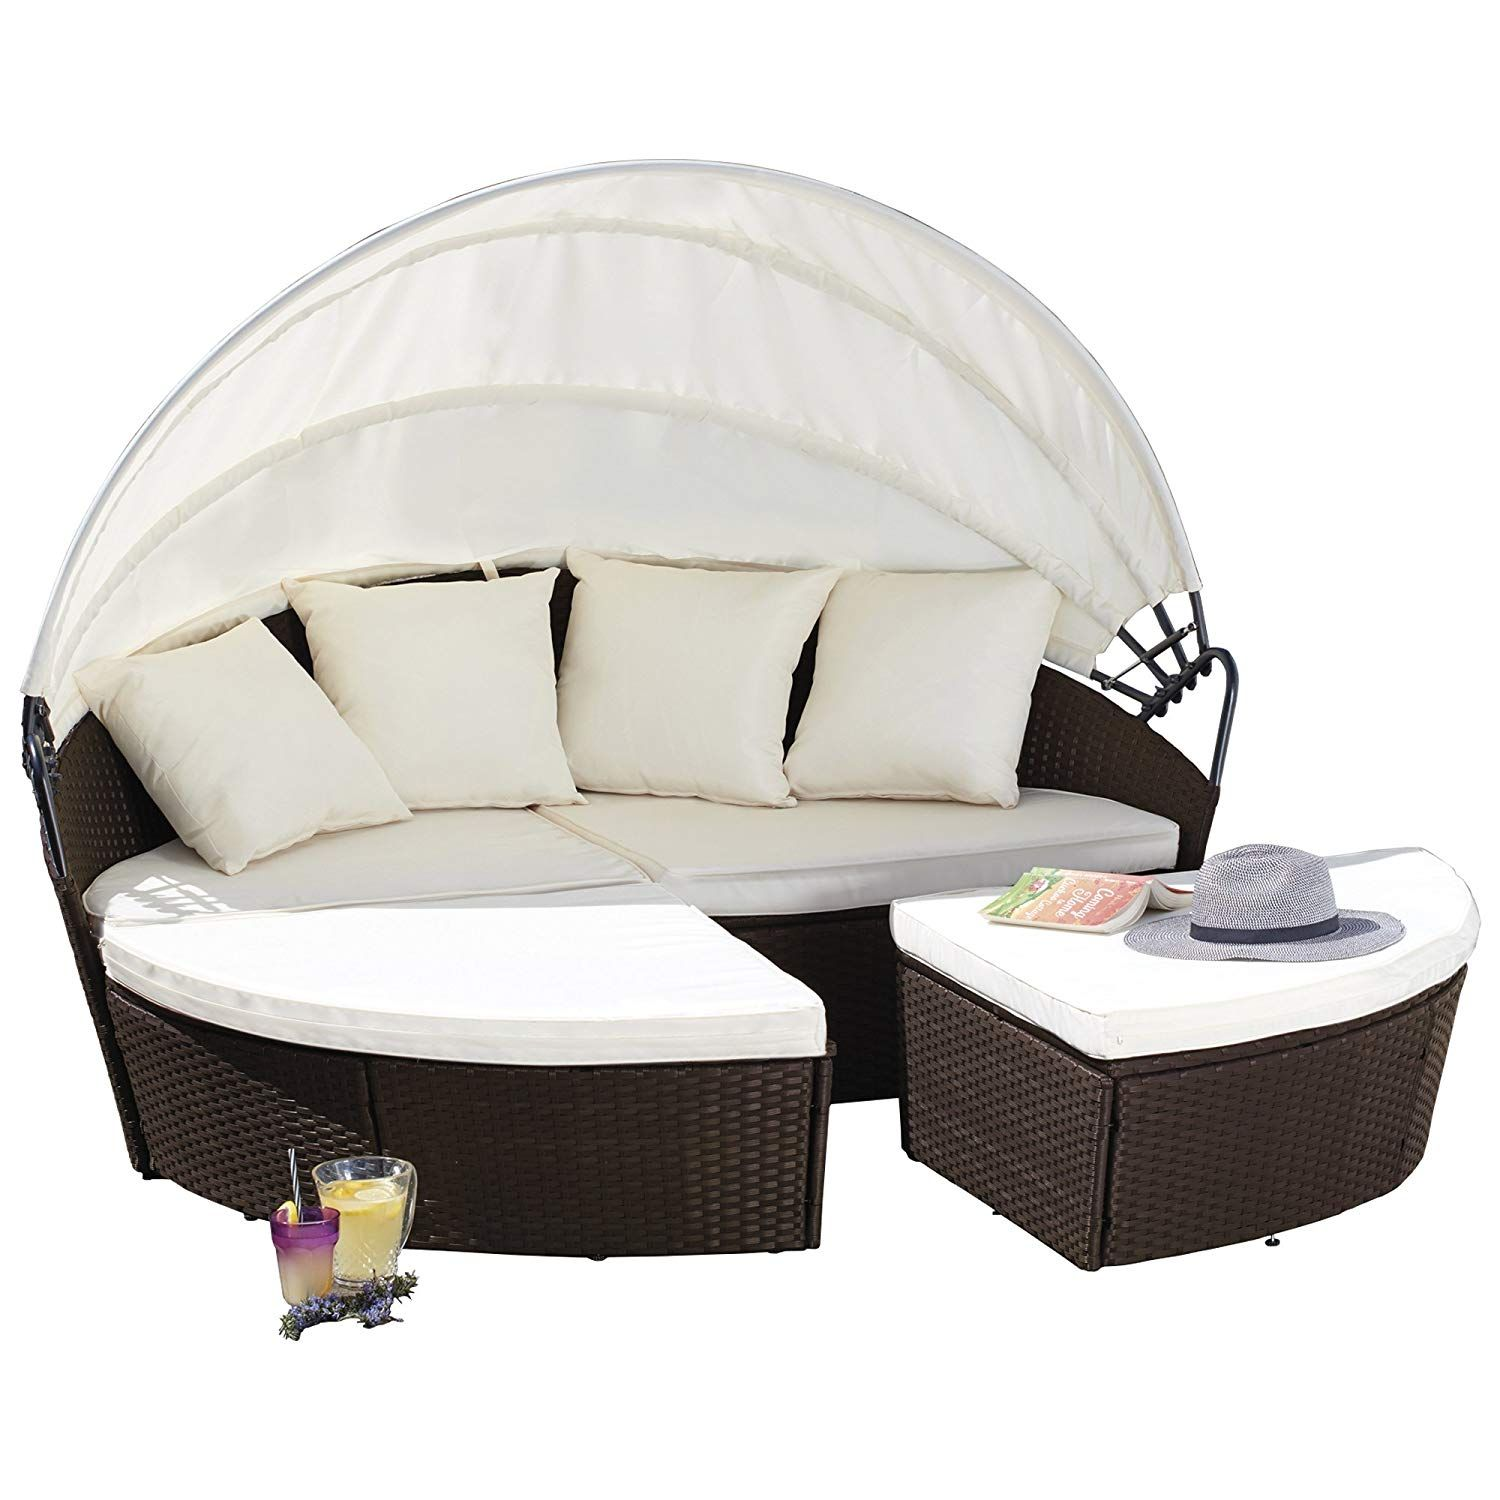 Garden gear rattan daybed outdoor furniture set extendable canopy cushions included 3 piece medium 160cm brown amazon co uk garden outdoors